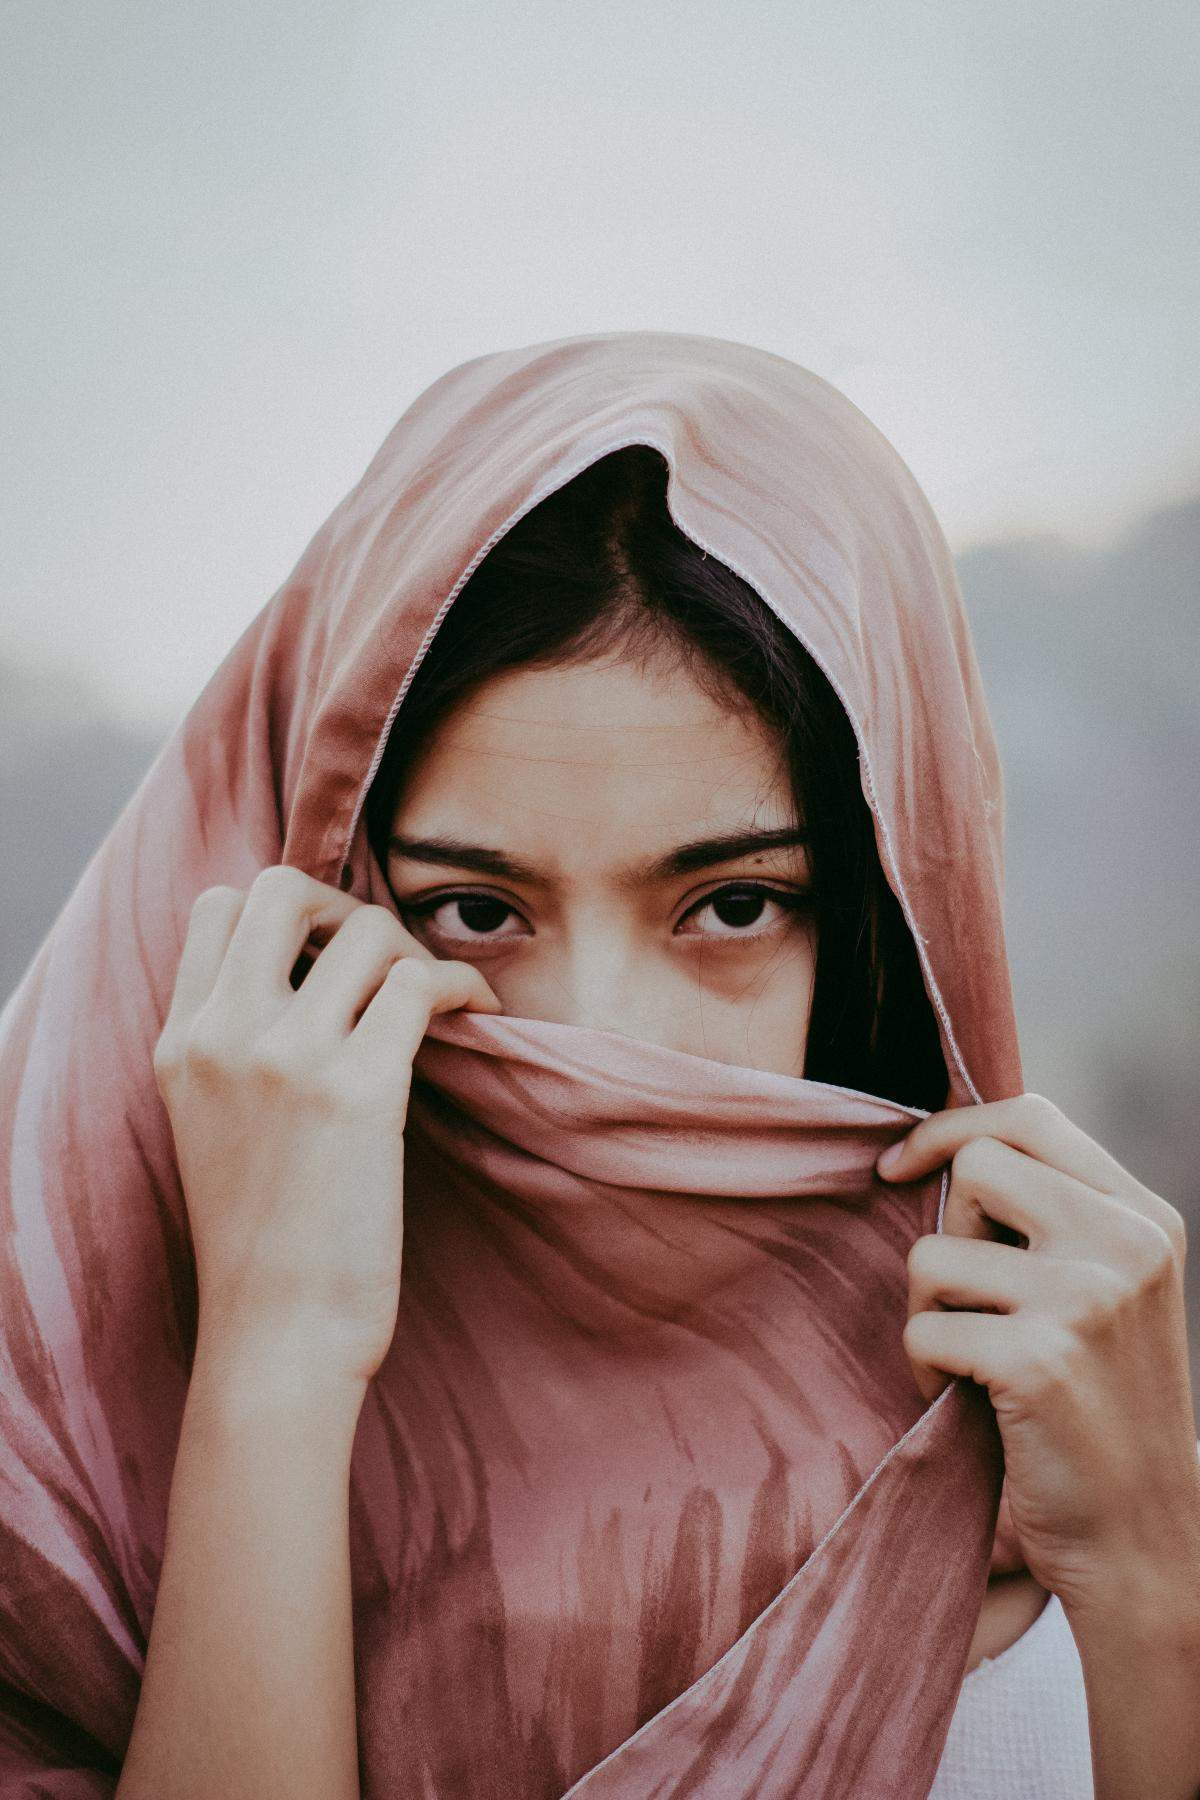 Portrait Photo of Woman Covering Her Mouth with Brown Scarf #424772